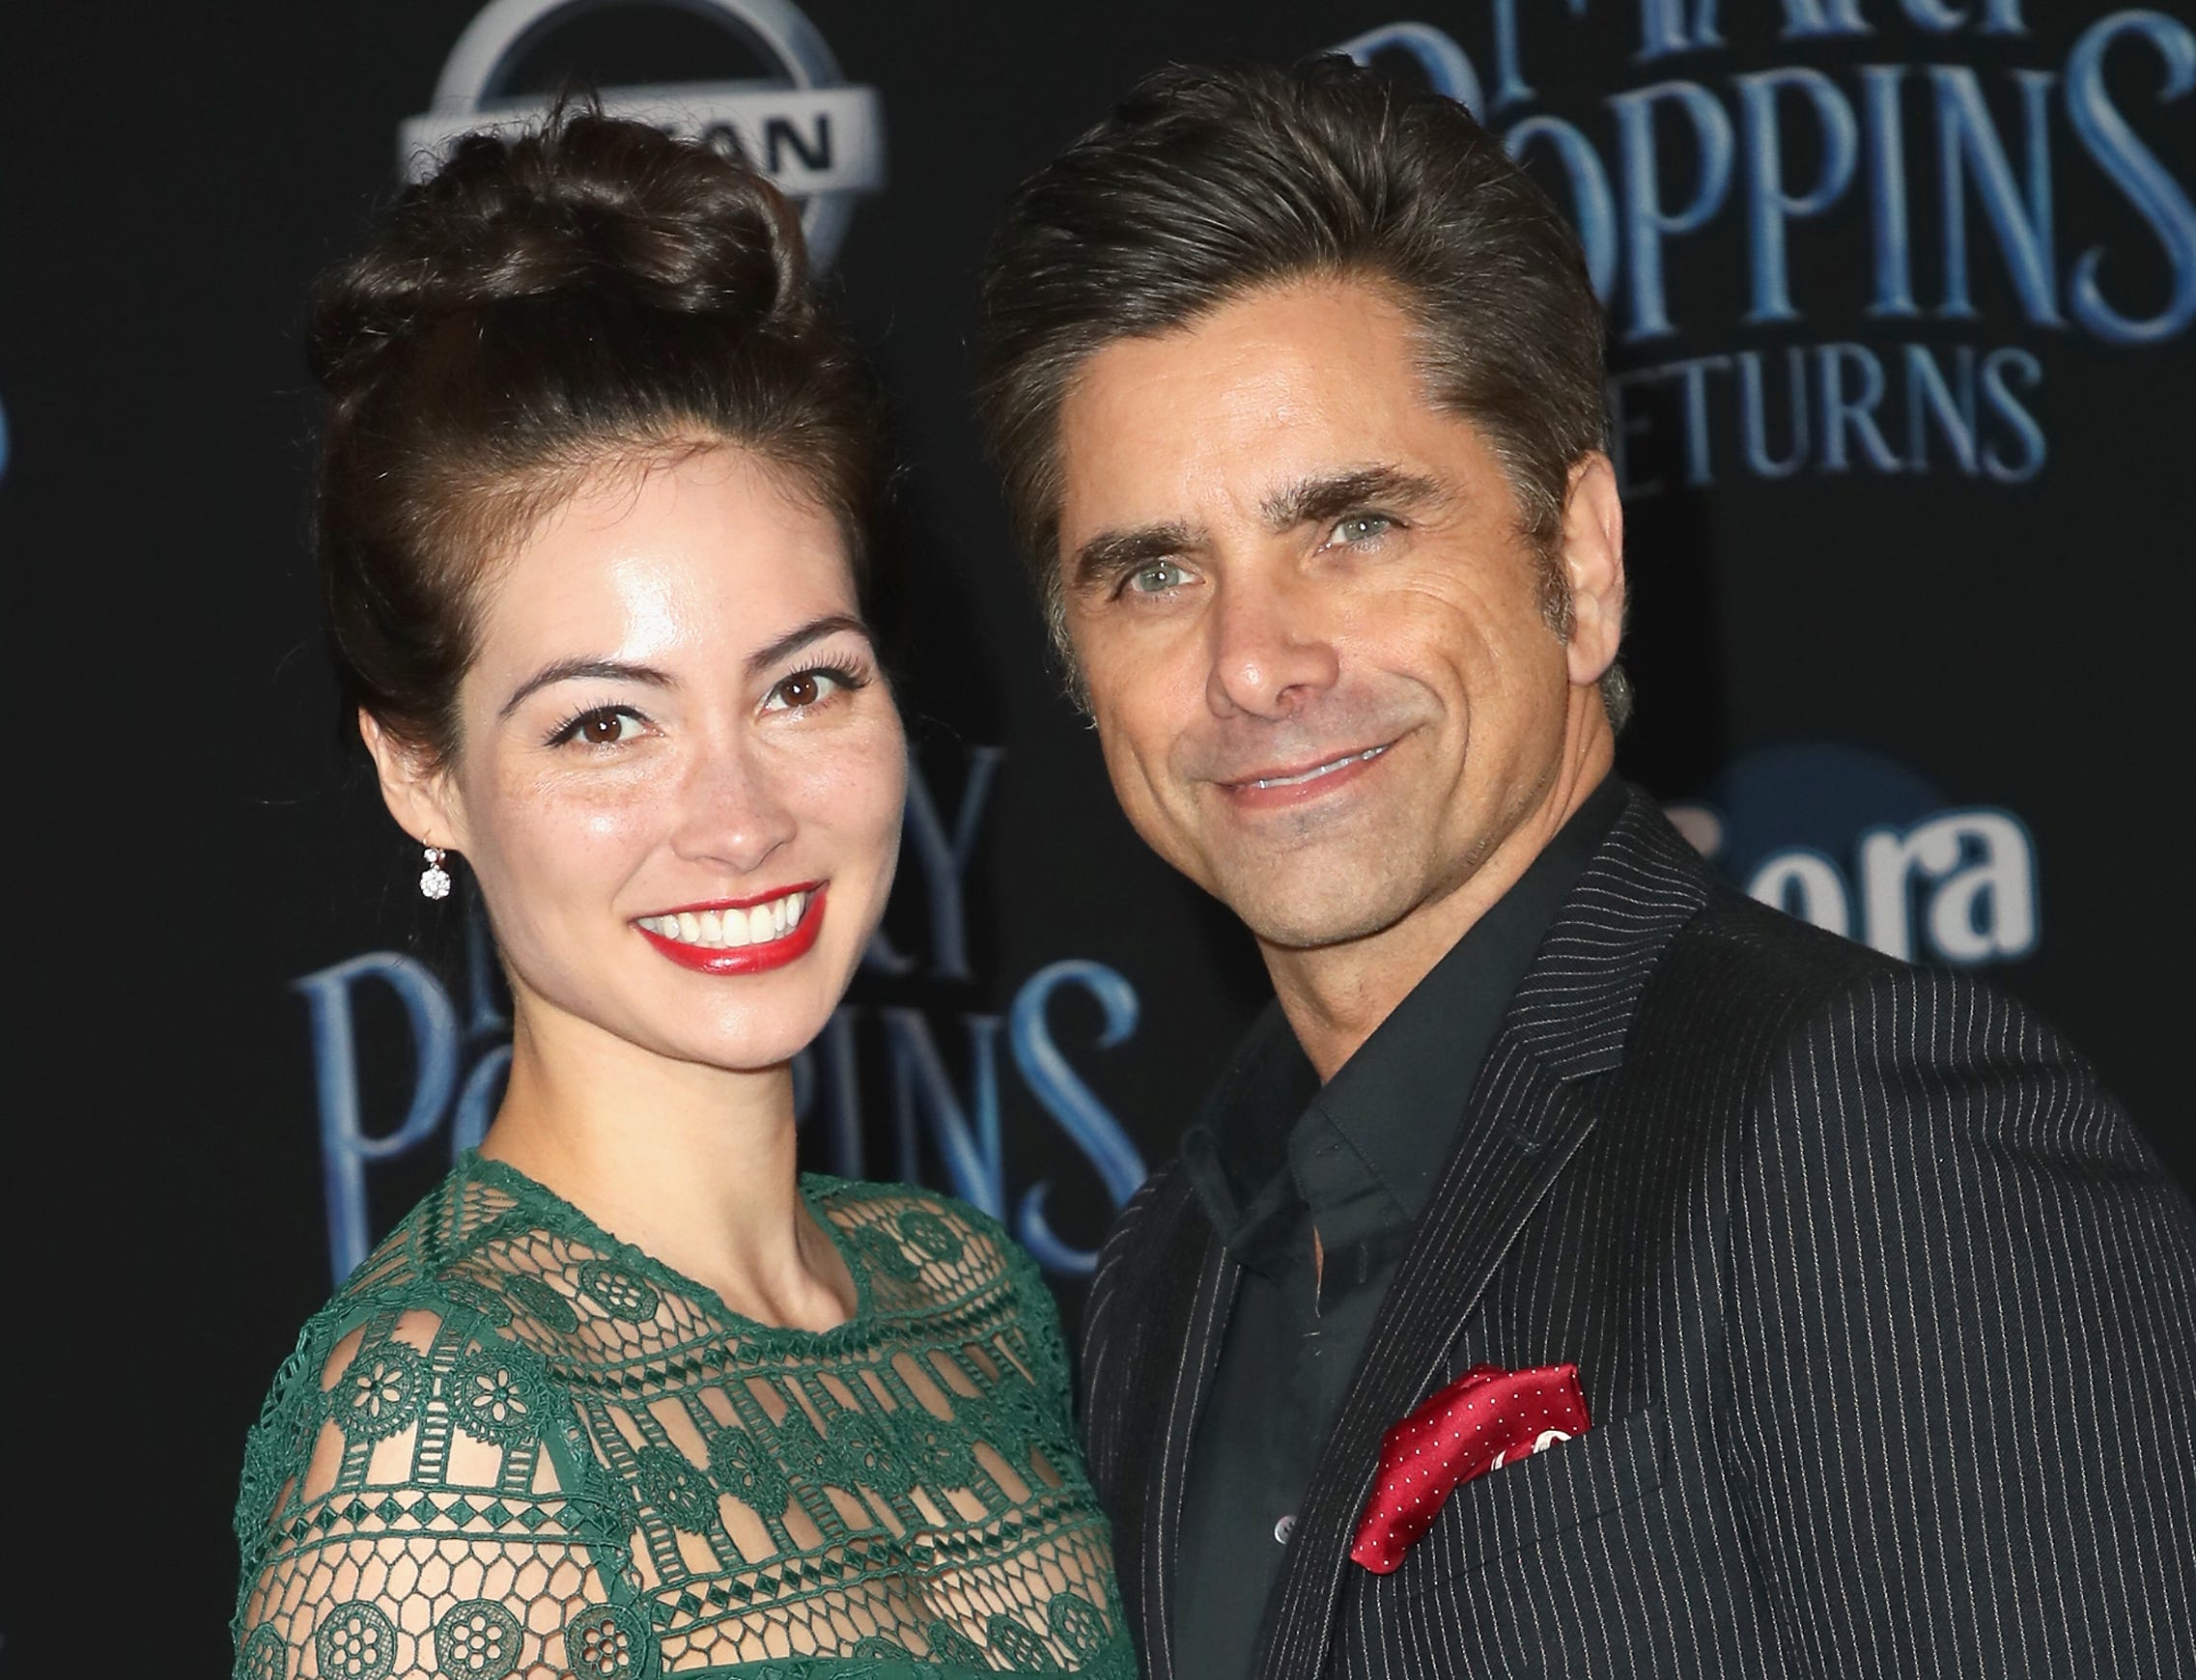 """LOS ANGELES, CALIFORNIA - NOVEMBER 29: Caitlin Mchugh and John Stamos attend the Premiere Of Disney's """"Mary Poppins Returns"""" at El Capitan Theatre on November 29, 2018 in Los Angeles, California. (Photo by David Livingston/Getty Images) ORG XMIT: 775258987 ORIG FILE ID: 1074753300"""